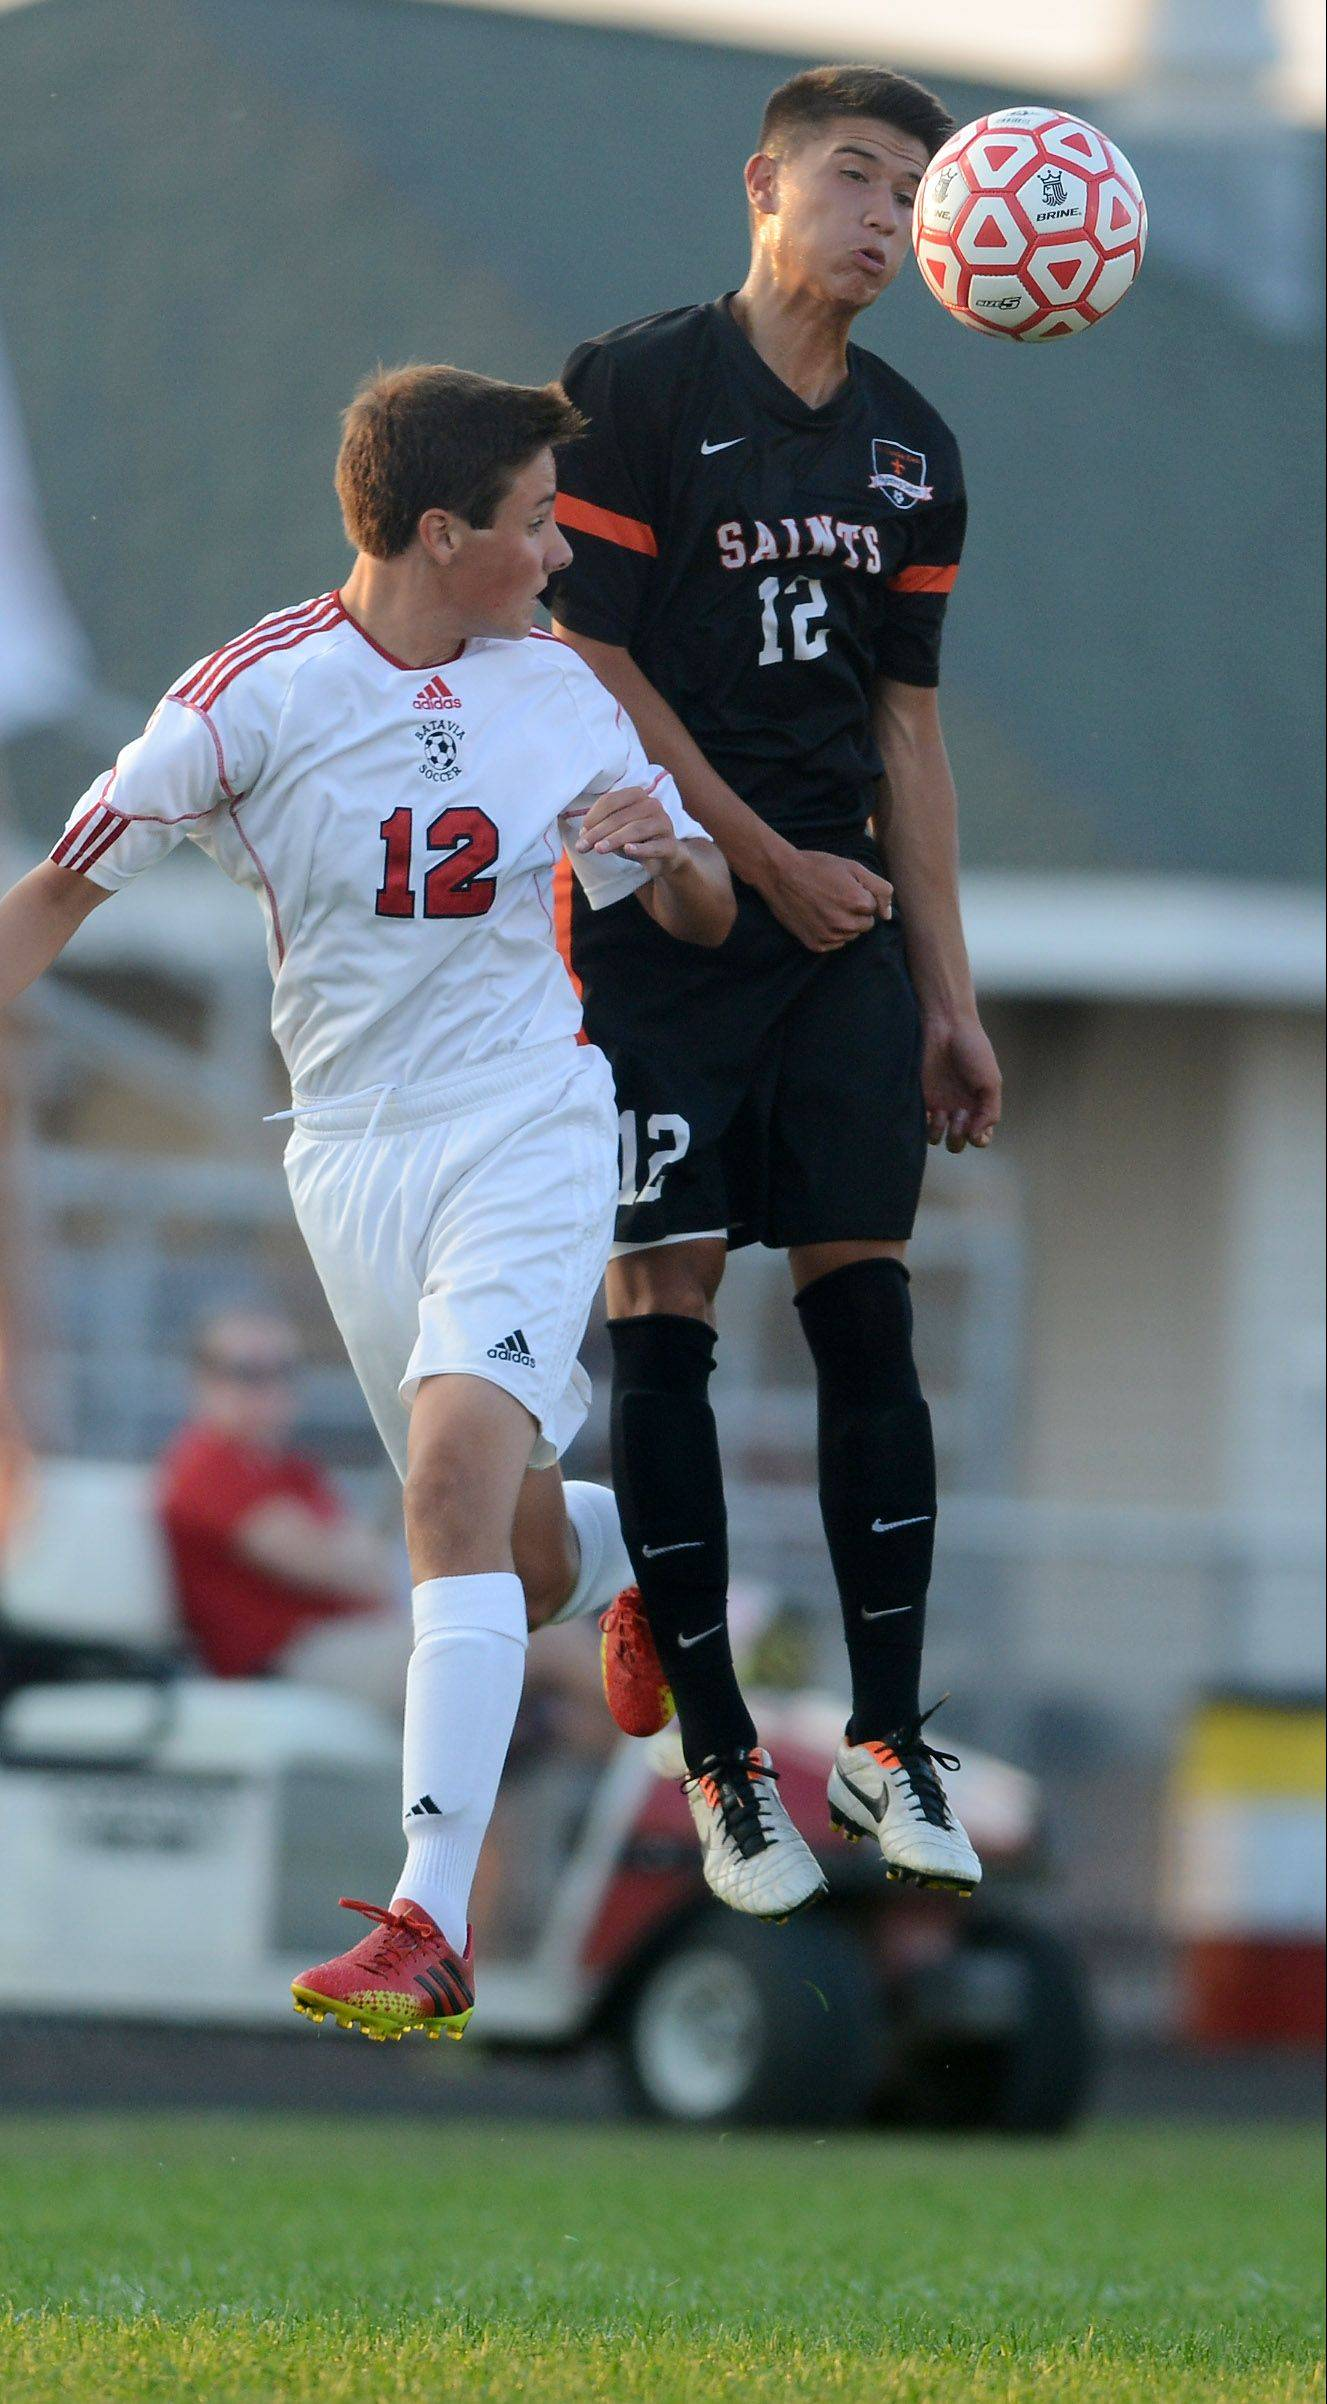 Batavia's Brandon Yunker and St. Charles East's Brandon Villanueva go up for a header during last week's game in Batavia.